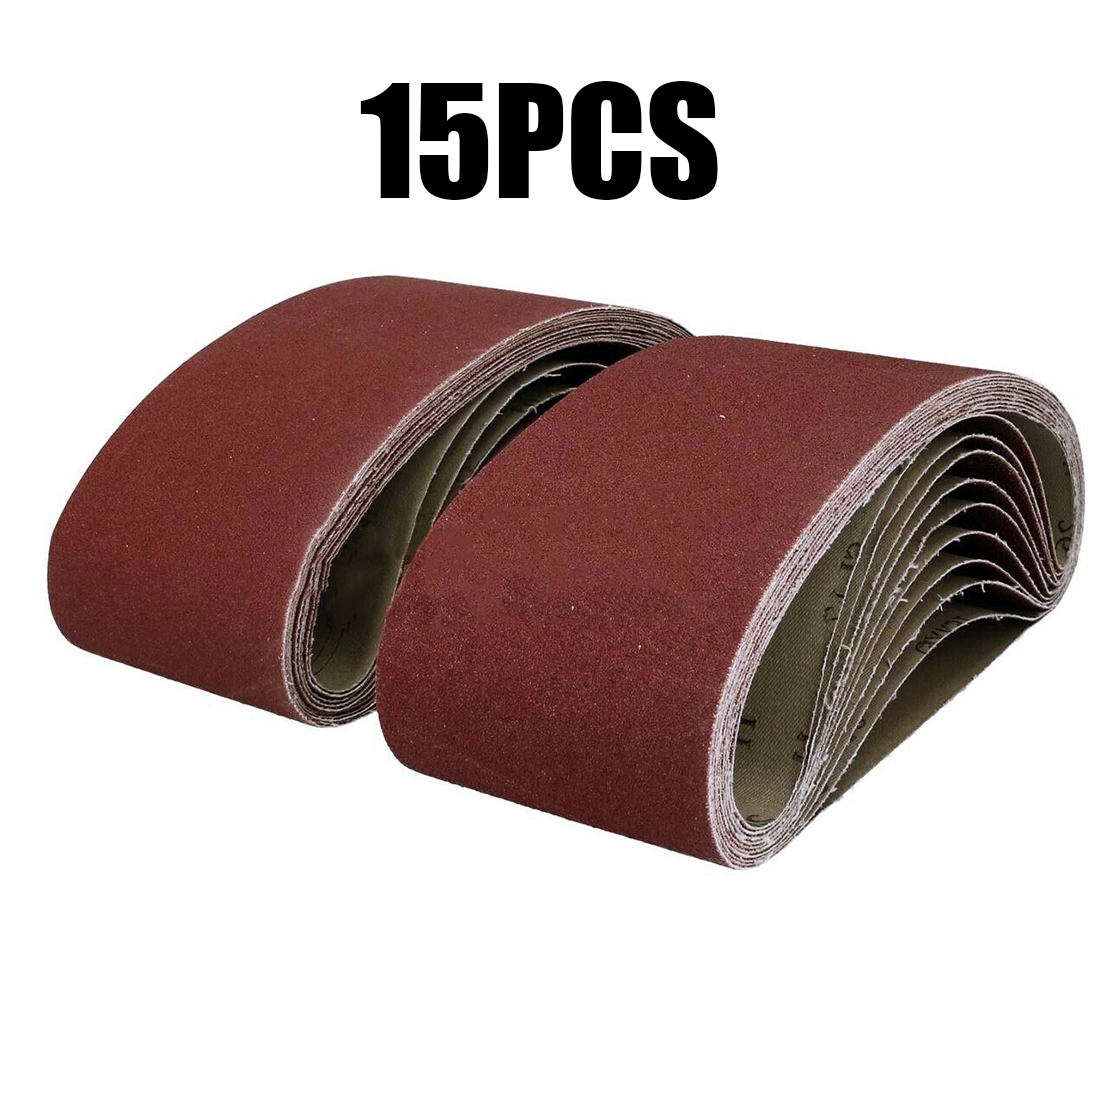 15Pcs Poshing Tool Sanding Belt For Wood Varnish Gypsum Plastic 40/80/120Grid Red Brown For Polishing